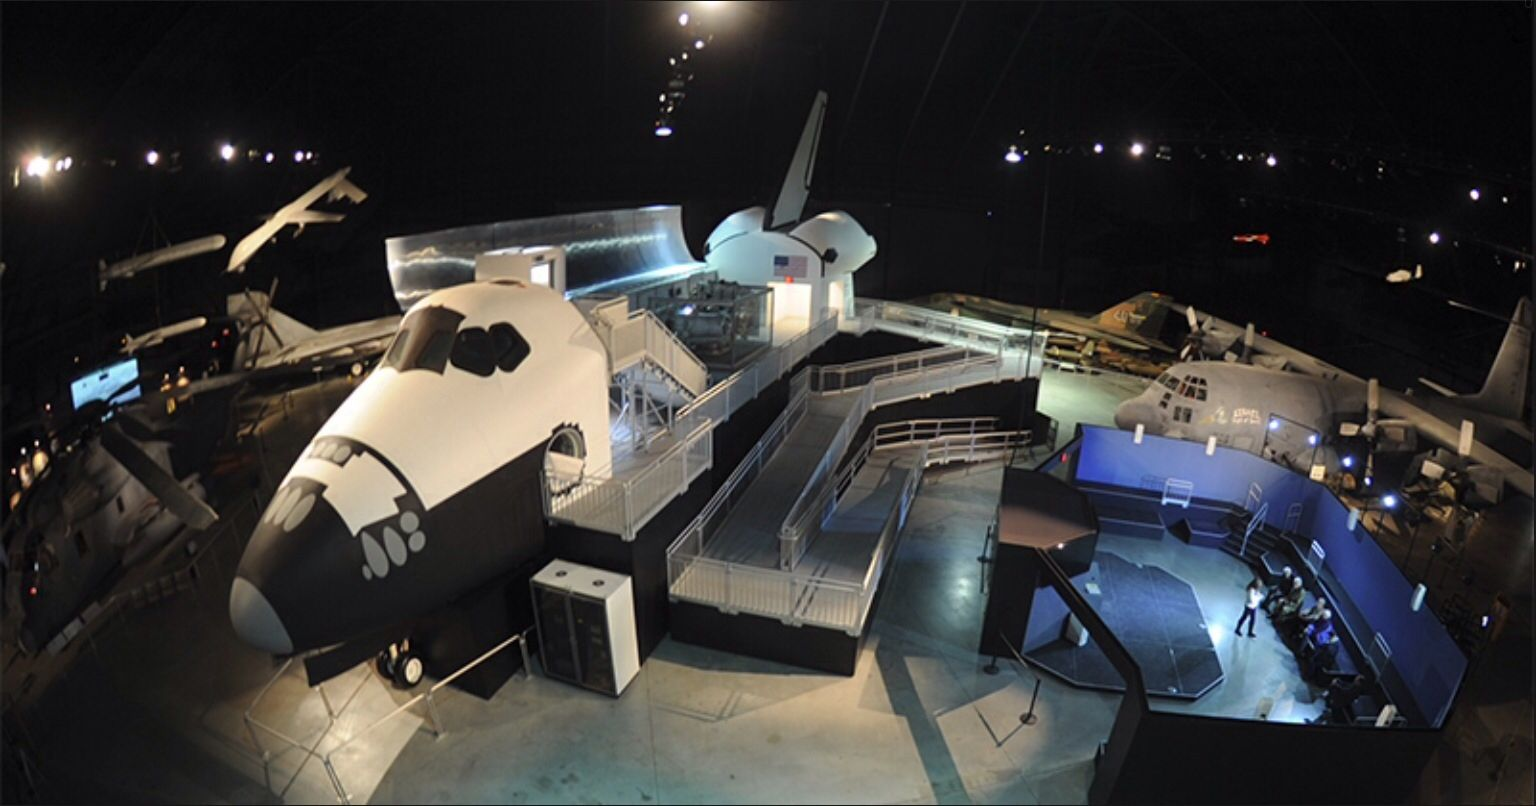 Air Force Space Shuttle Exhibit Ohio vacations, National